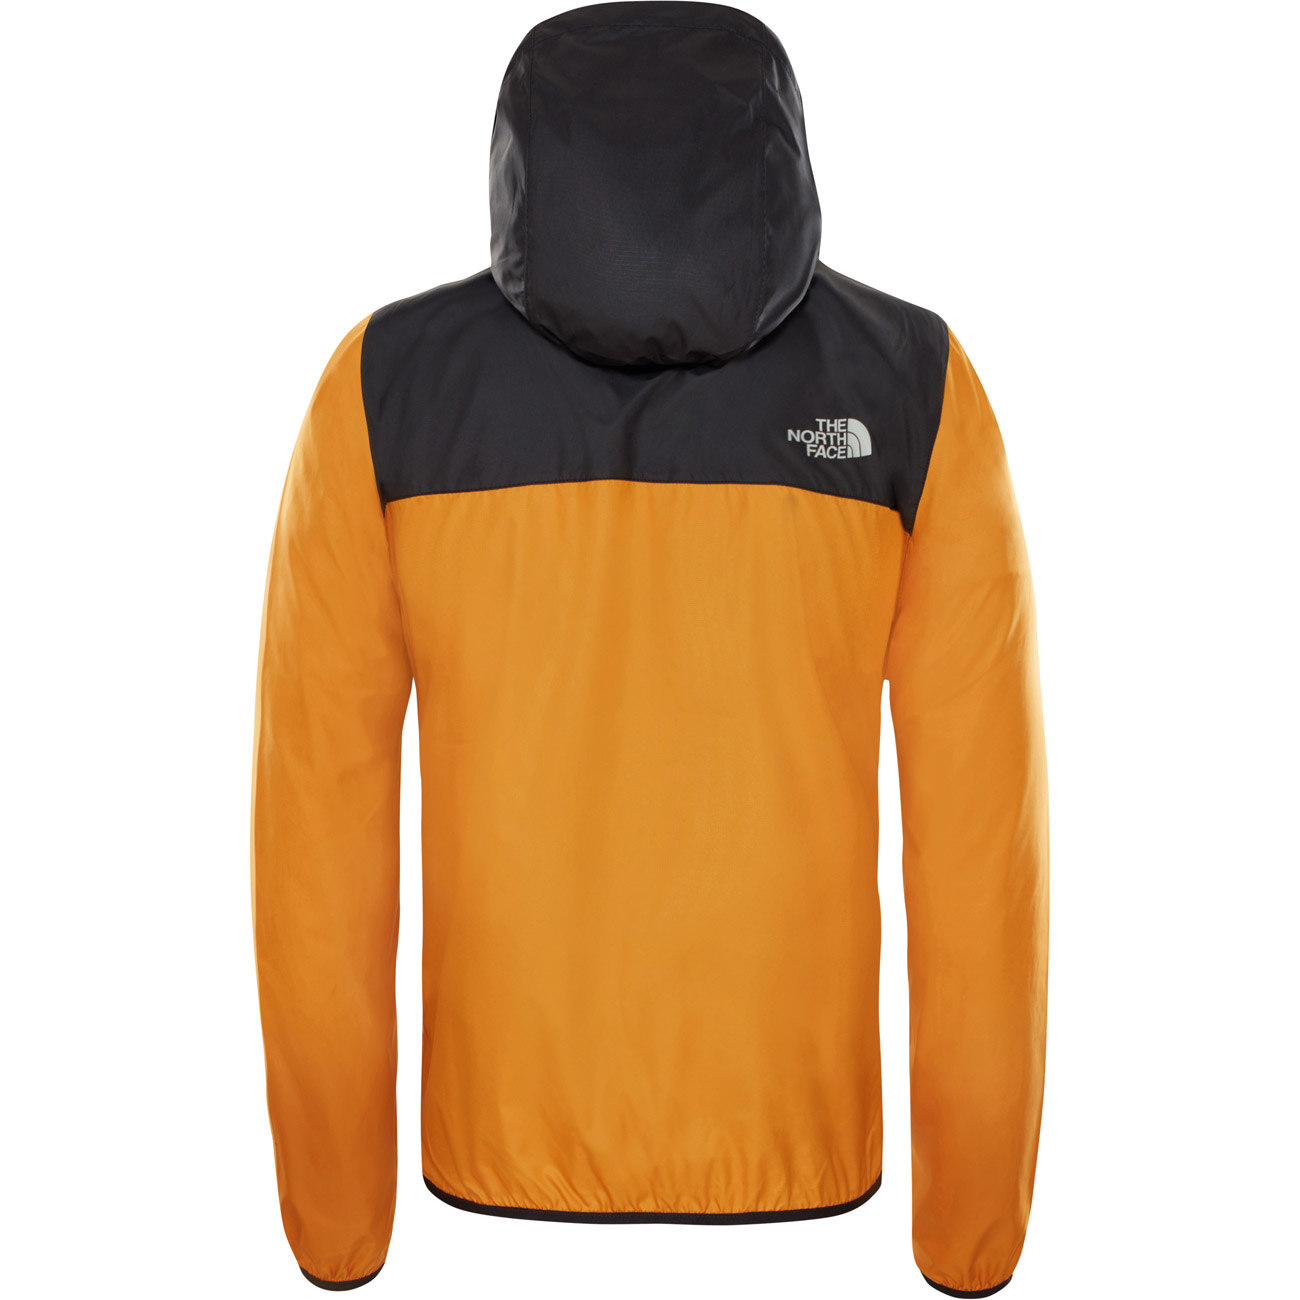 new product 8f917 83113 Details zu The North Face Herren Jacke M CYCLONE 2